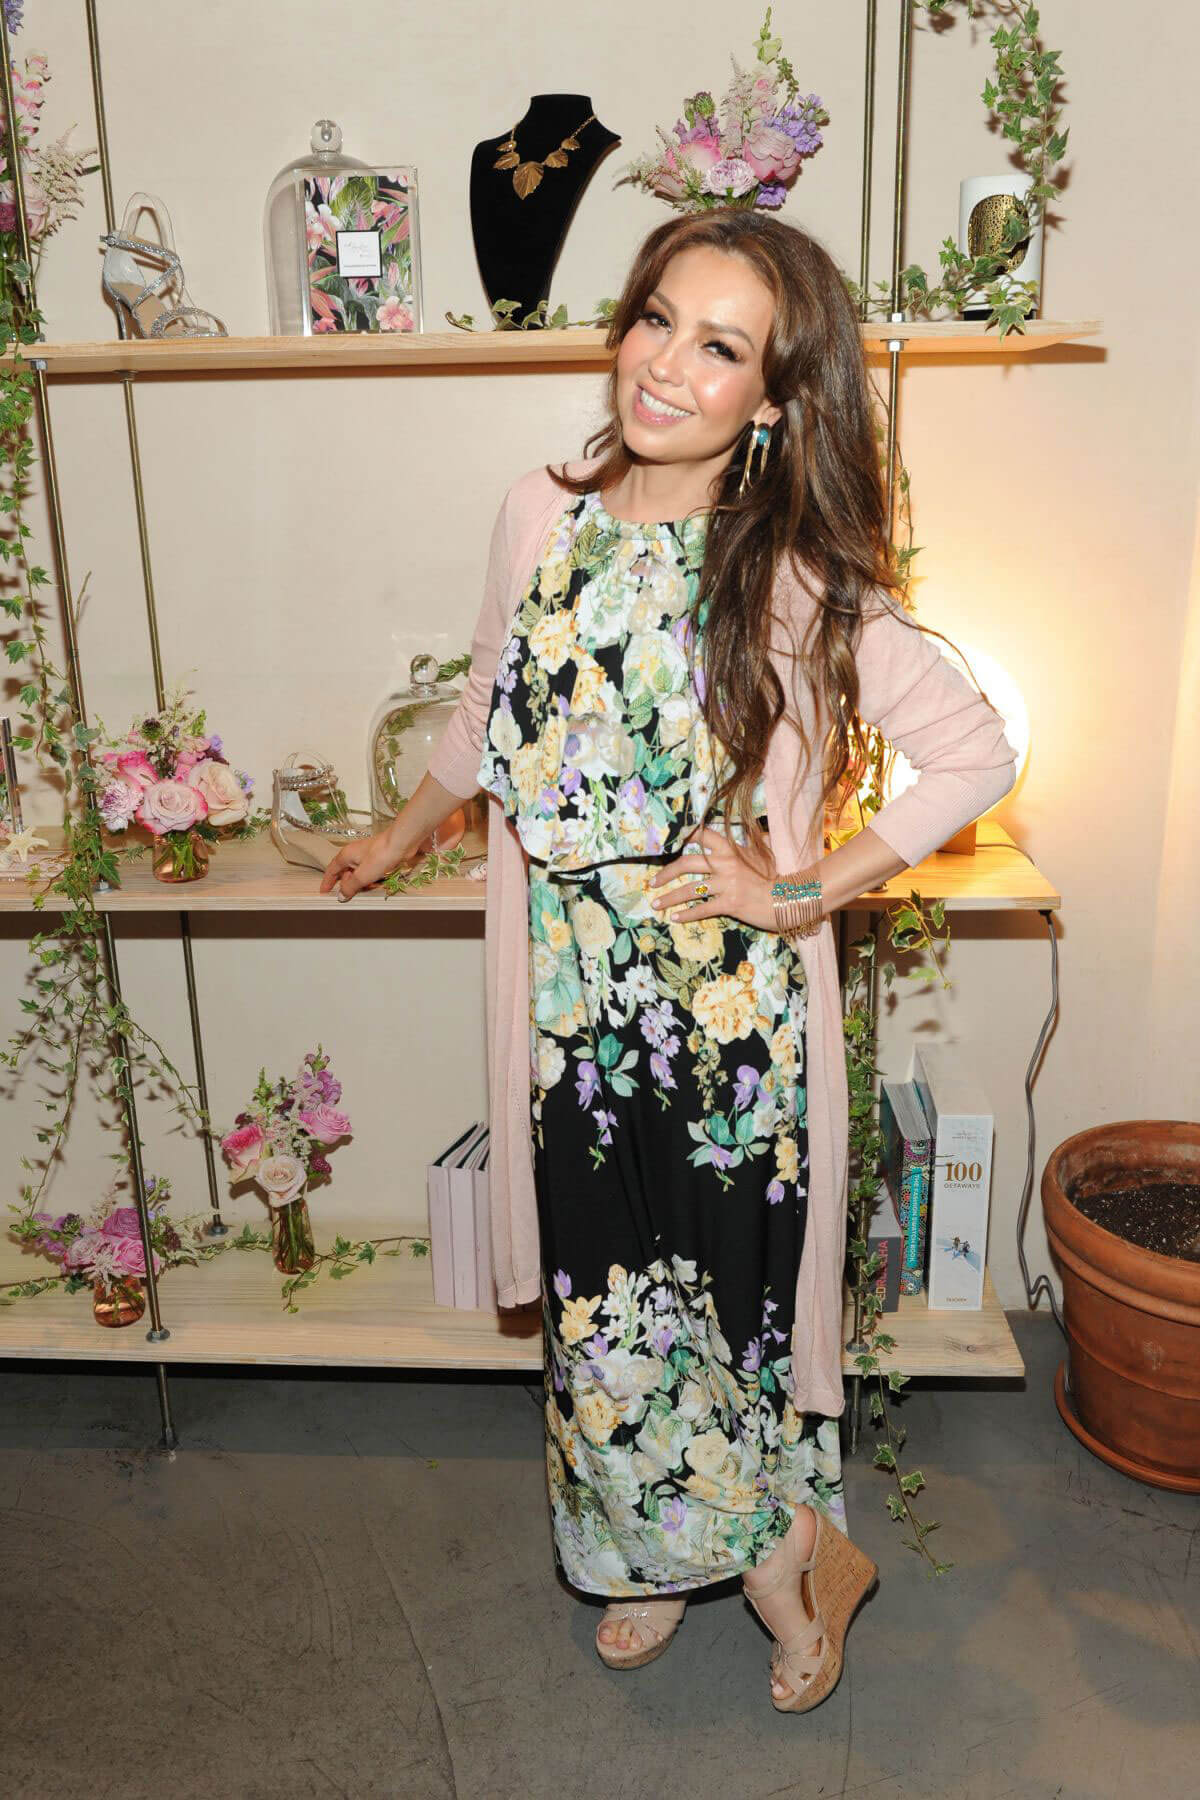 Thalia Celebrates Summer '18 Collection Available Exclusively at Macy's in New York 2018/05/31 1